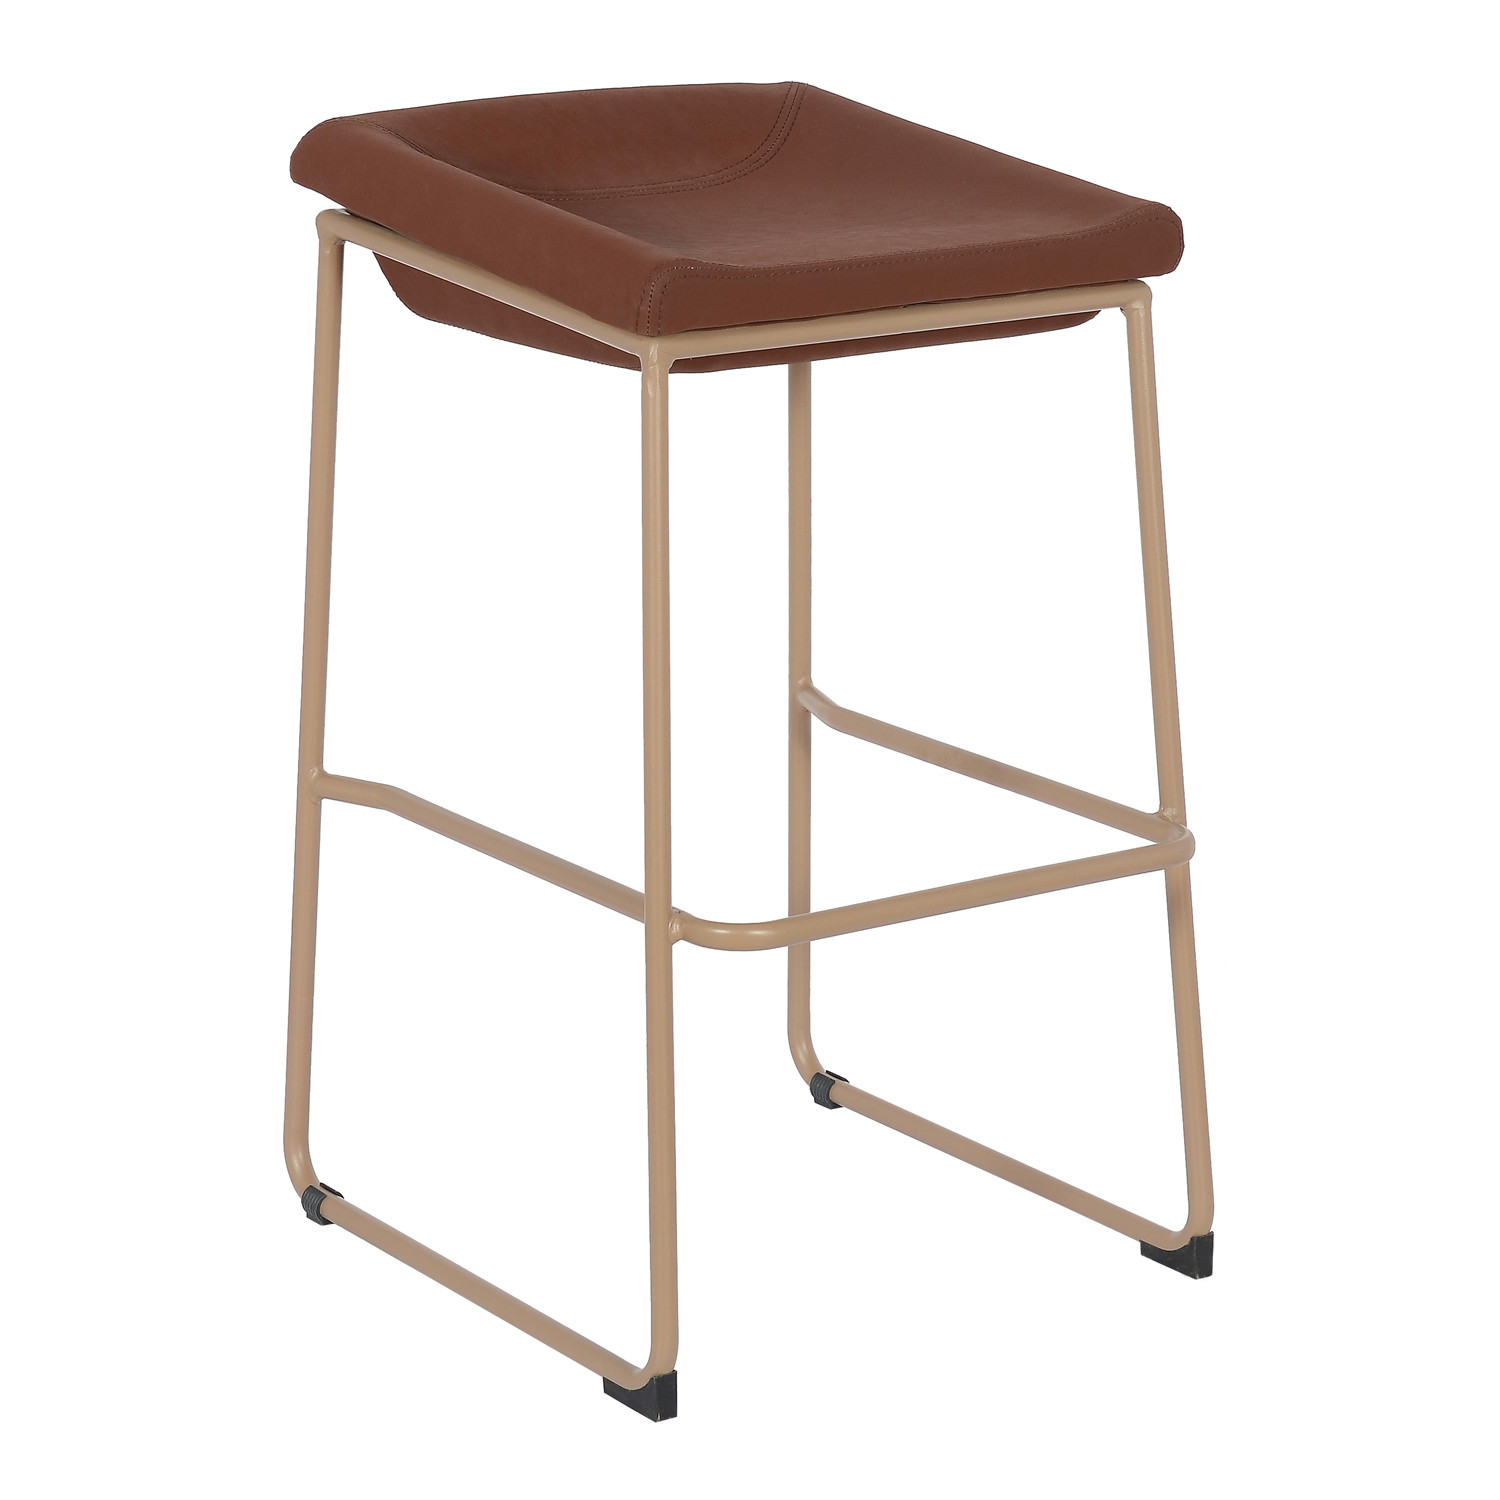 High Leatherette Stool (67 cm) Adhon, gallery image 1